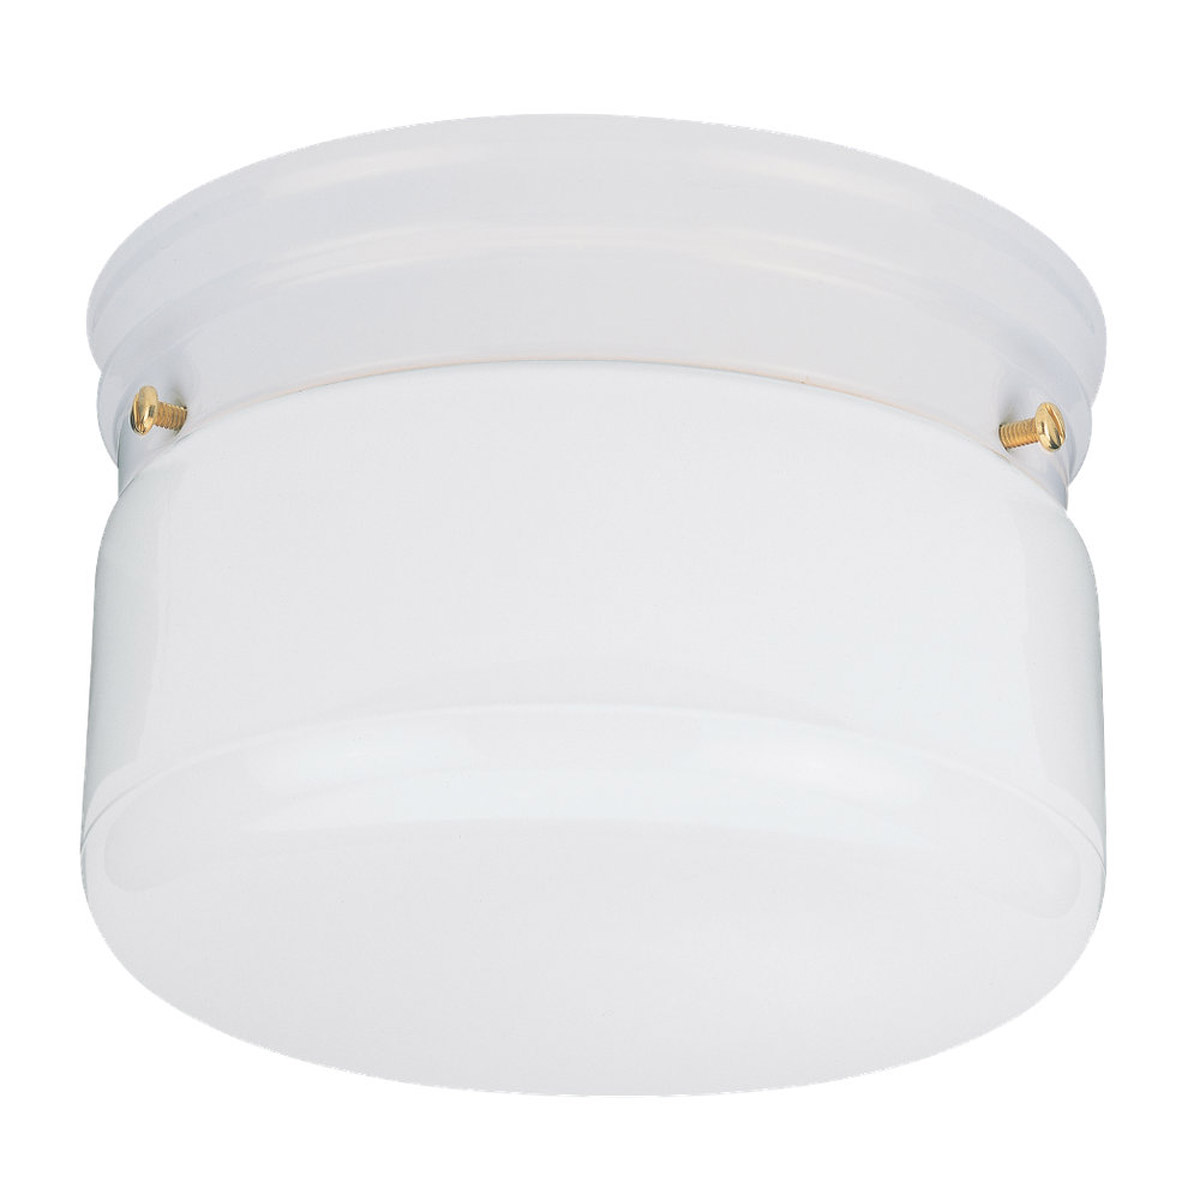 Sea Gull 5323-15 Economy Flush Mount 2 Light 10 inch White Flush Mount Ceiling Light photo